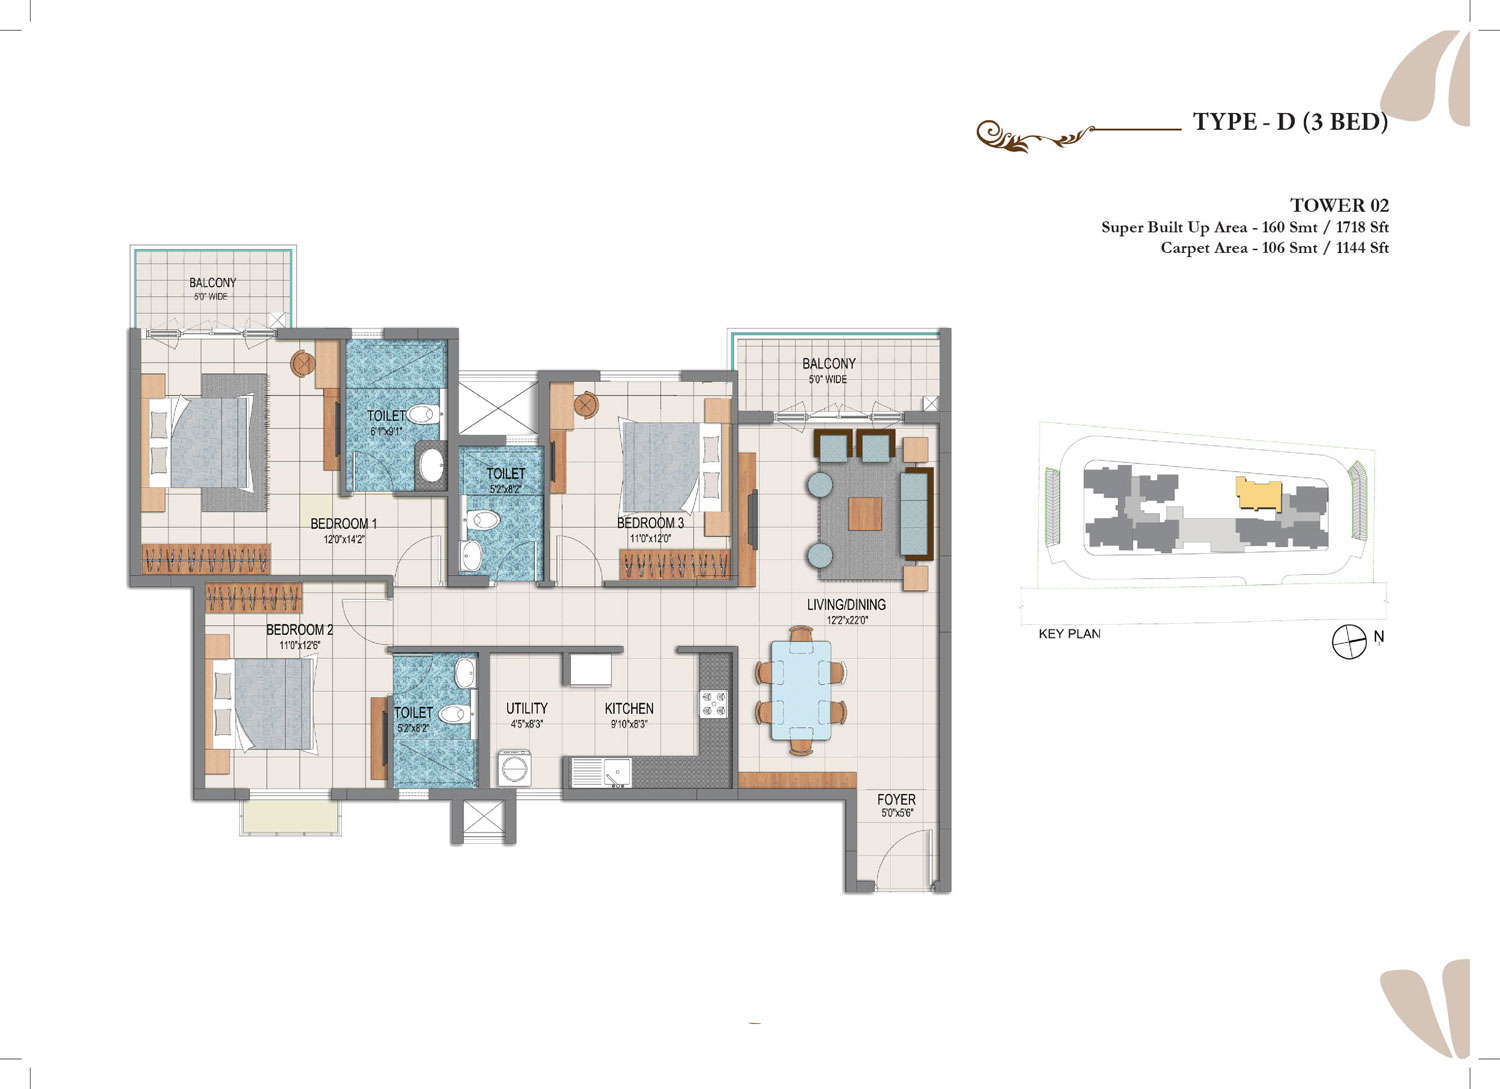 Type D - 3 Bed - 1718 Sq Ft